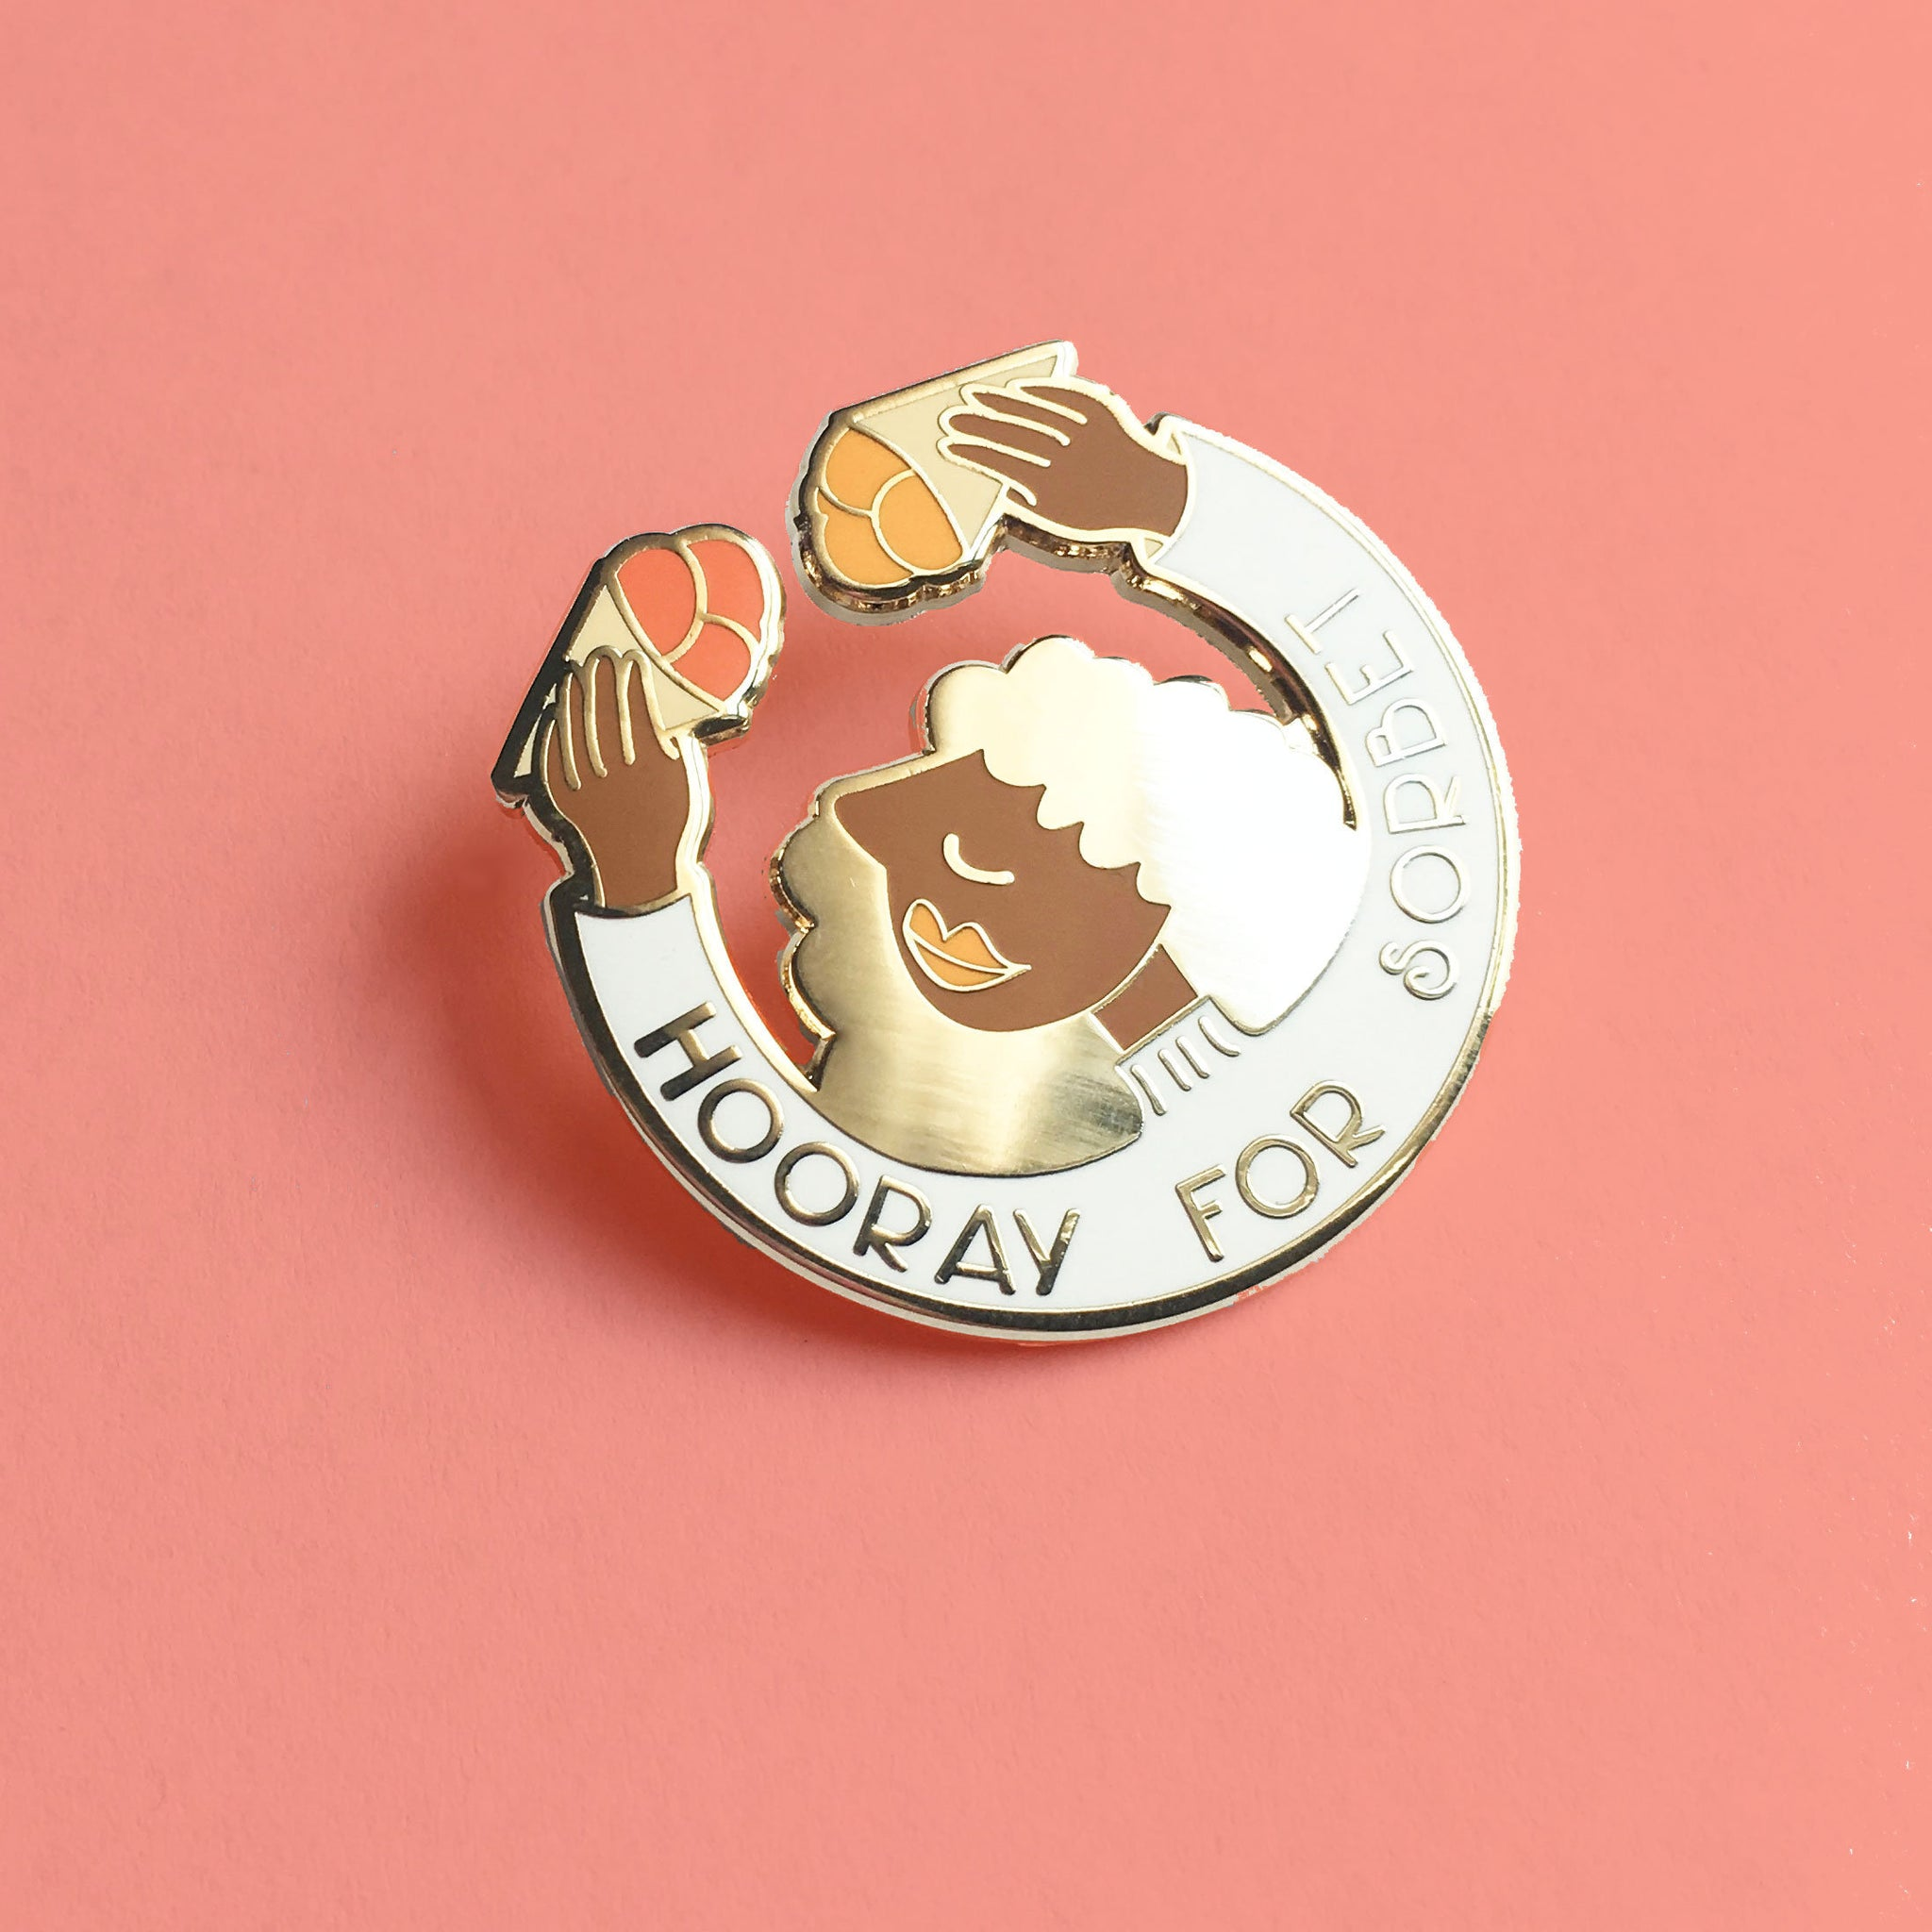 Hooray for Sorbet Hard Enamel Pin